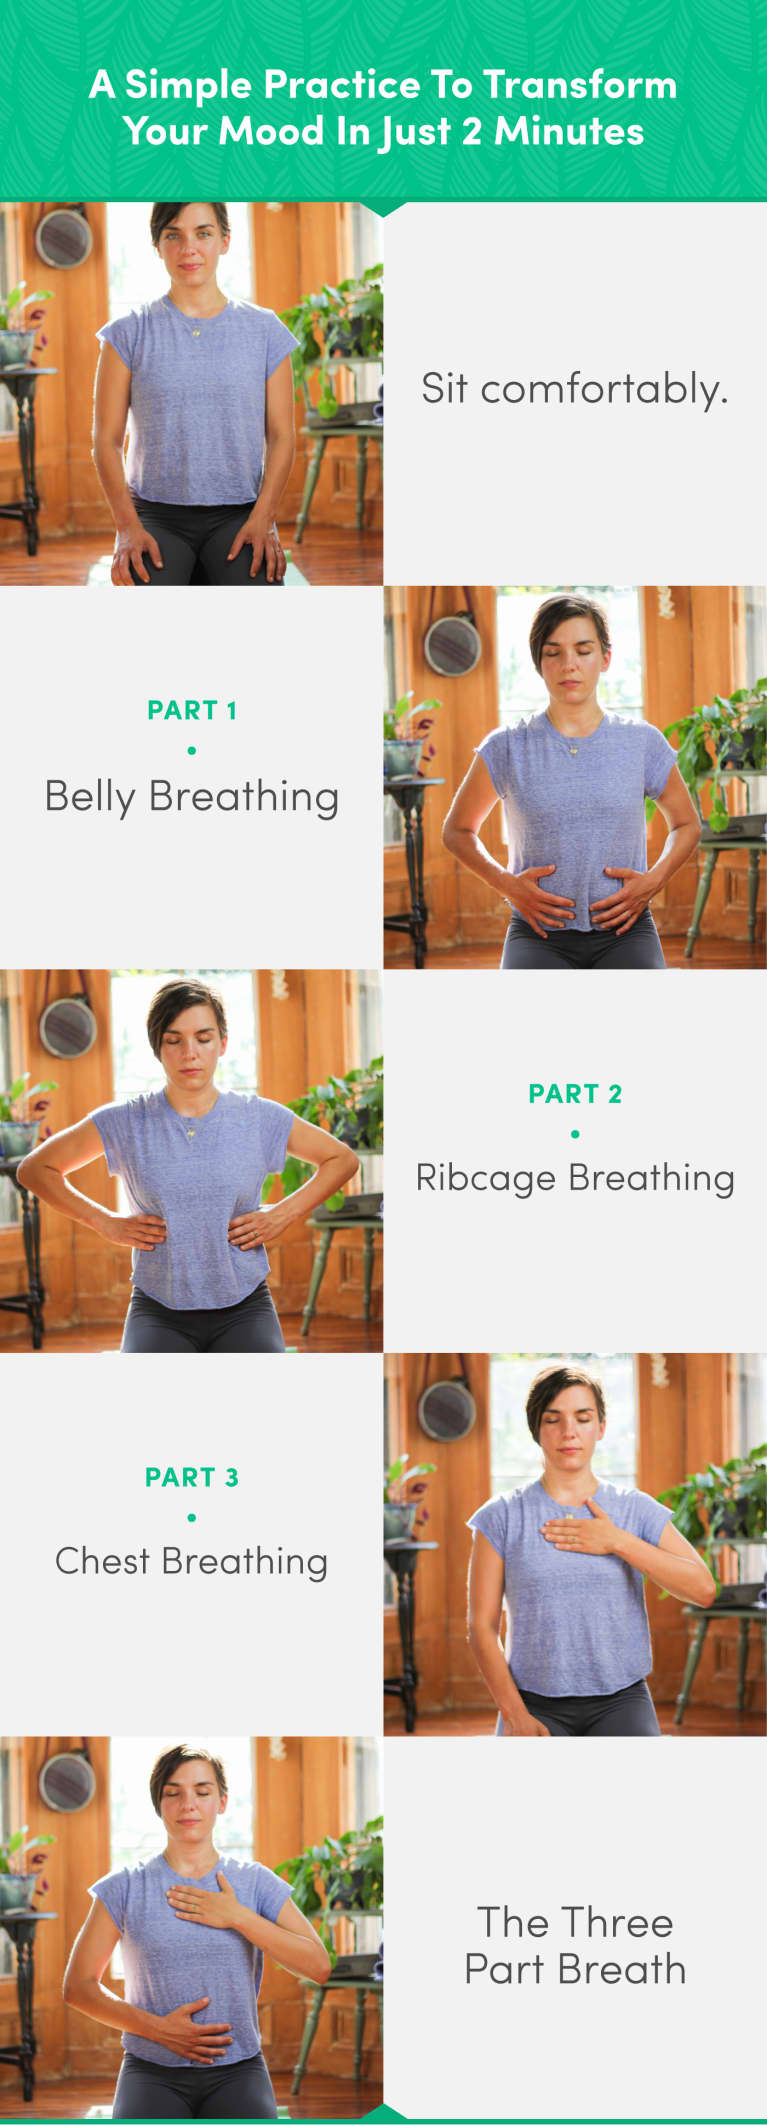 Transform Your Mood In 2 Minutes With This Simple Breathing Practice